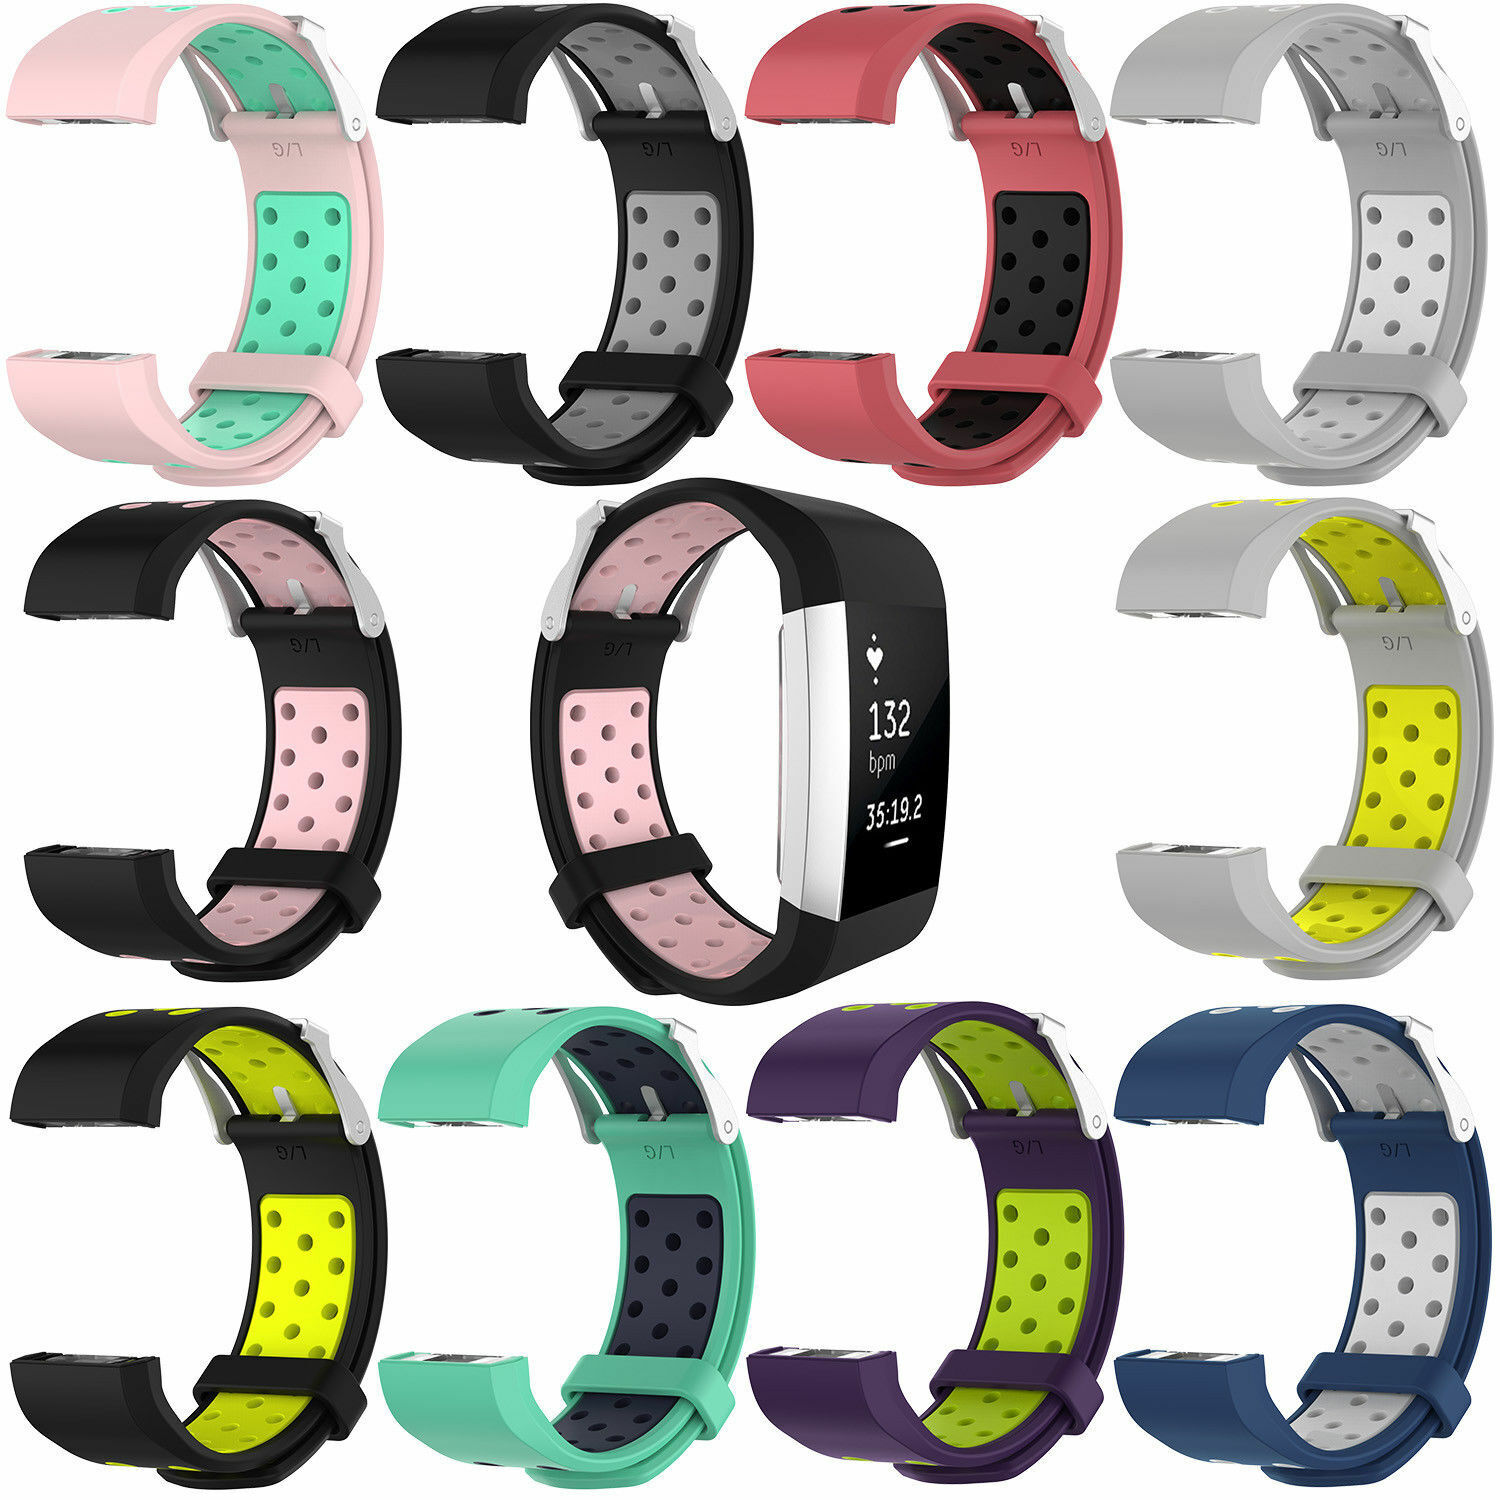 Replacement Silicone Sports Strap Wrist Band Bracelet For Fitbit Charge 2 / 2 HR 2